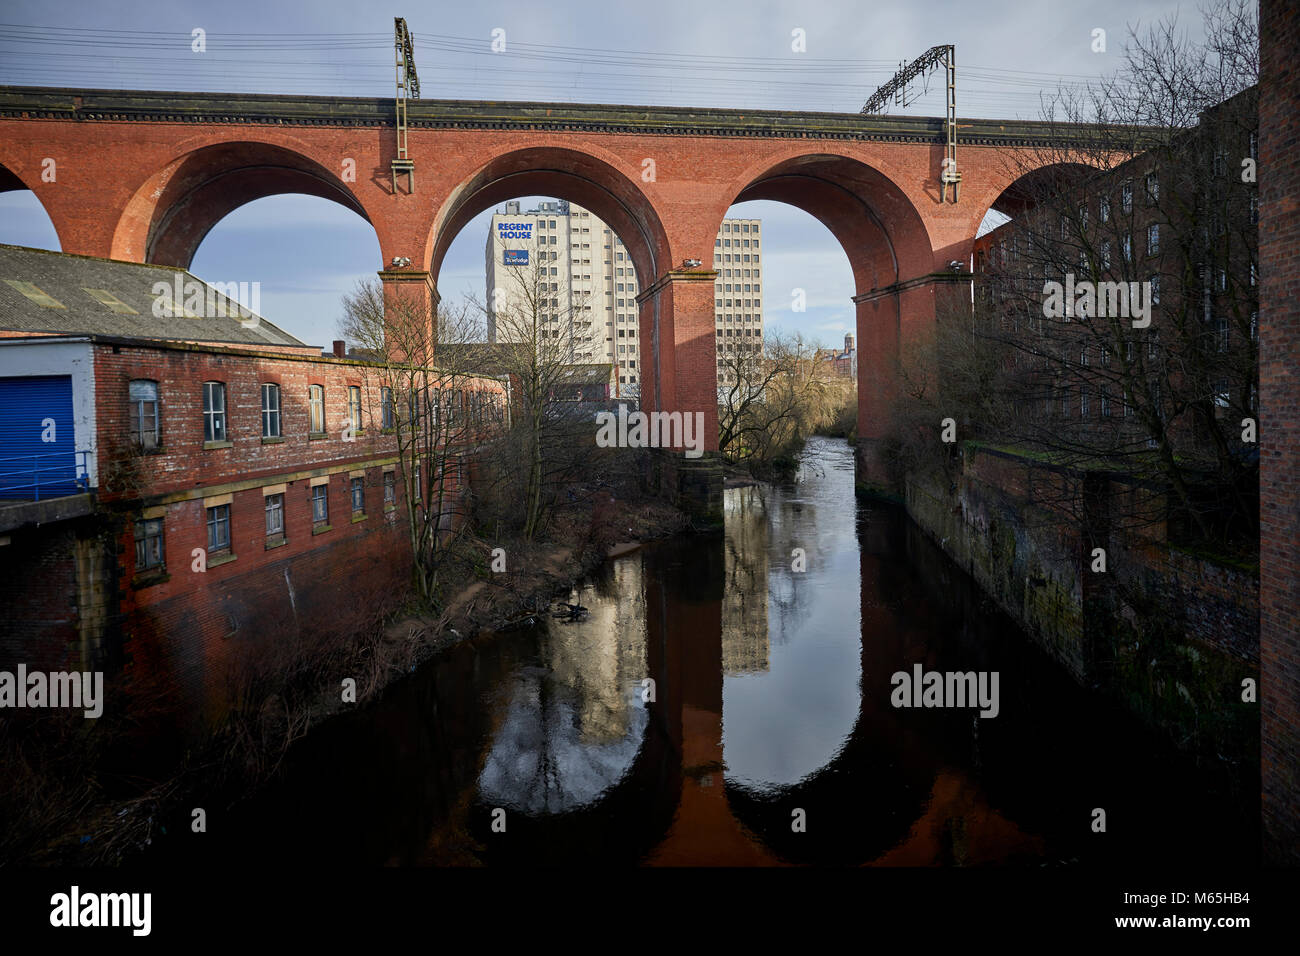 Stockport Viaduct reflecting into the River Mersey, in Stockport - Stock Image